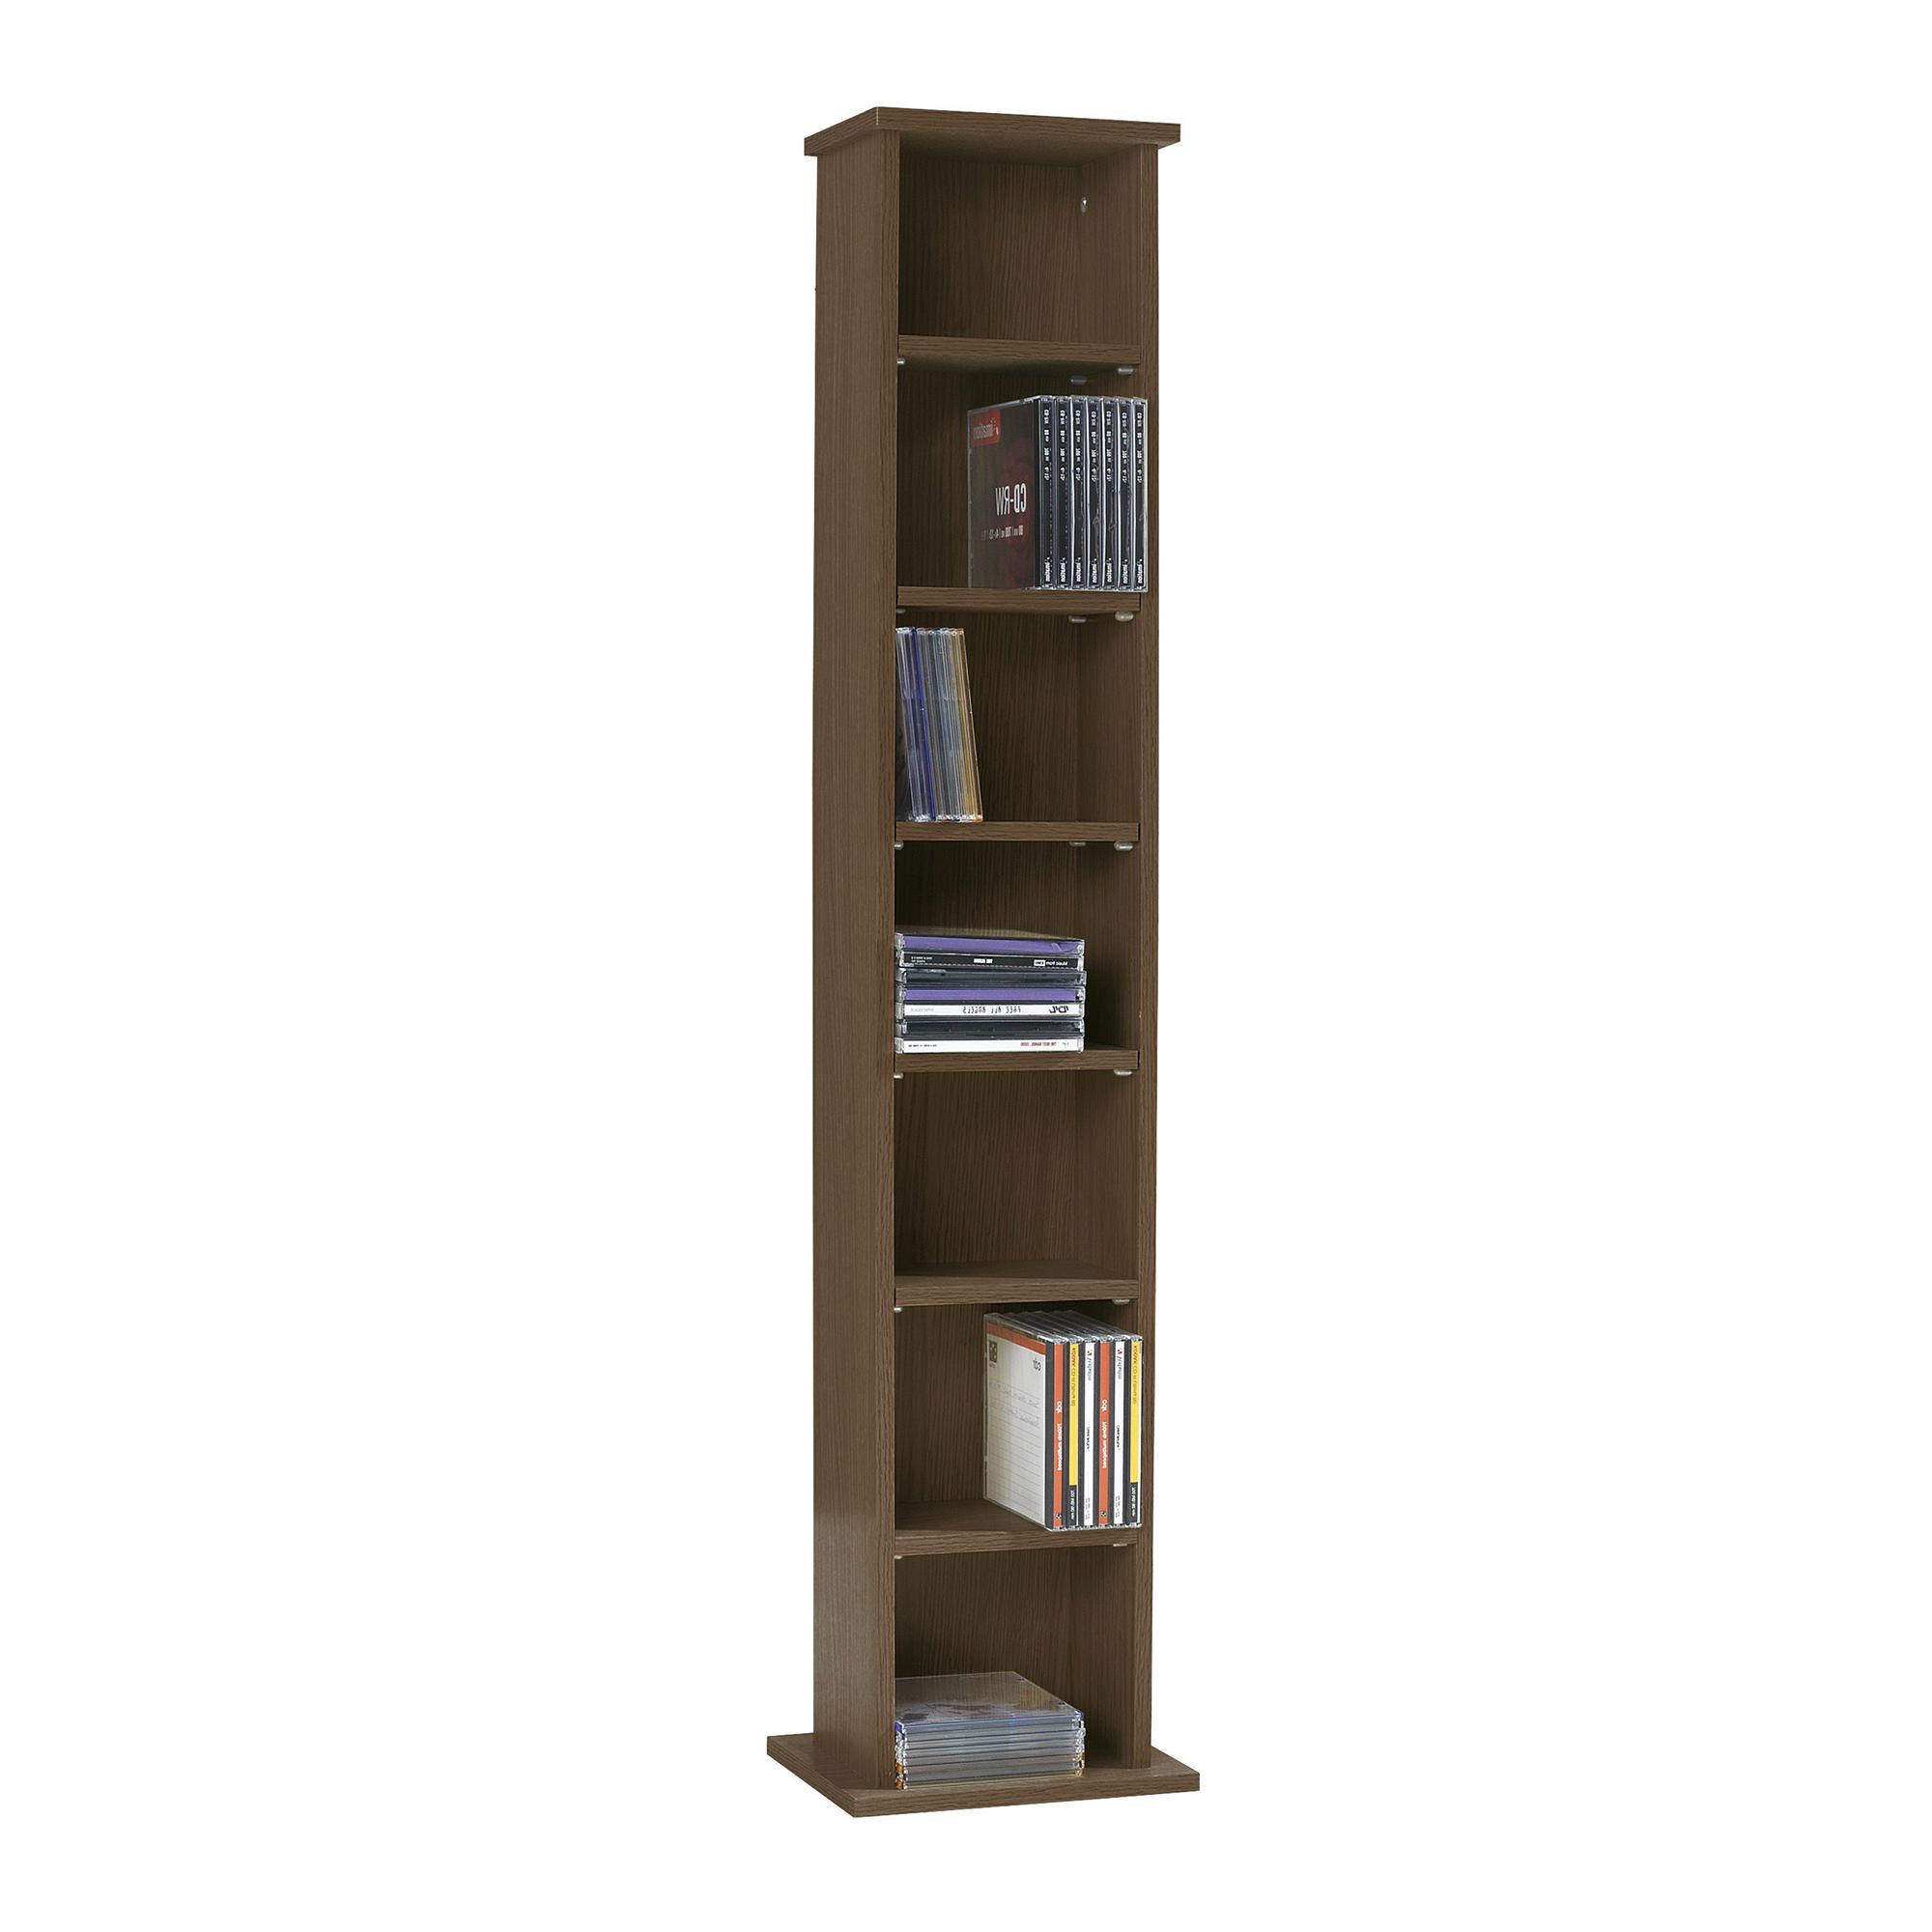 Fraser CD / DVD Storage H 109Cm, Walnut-effect